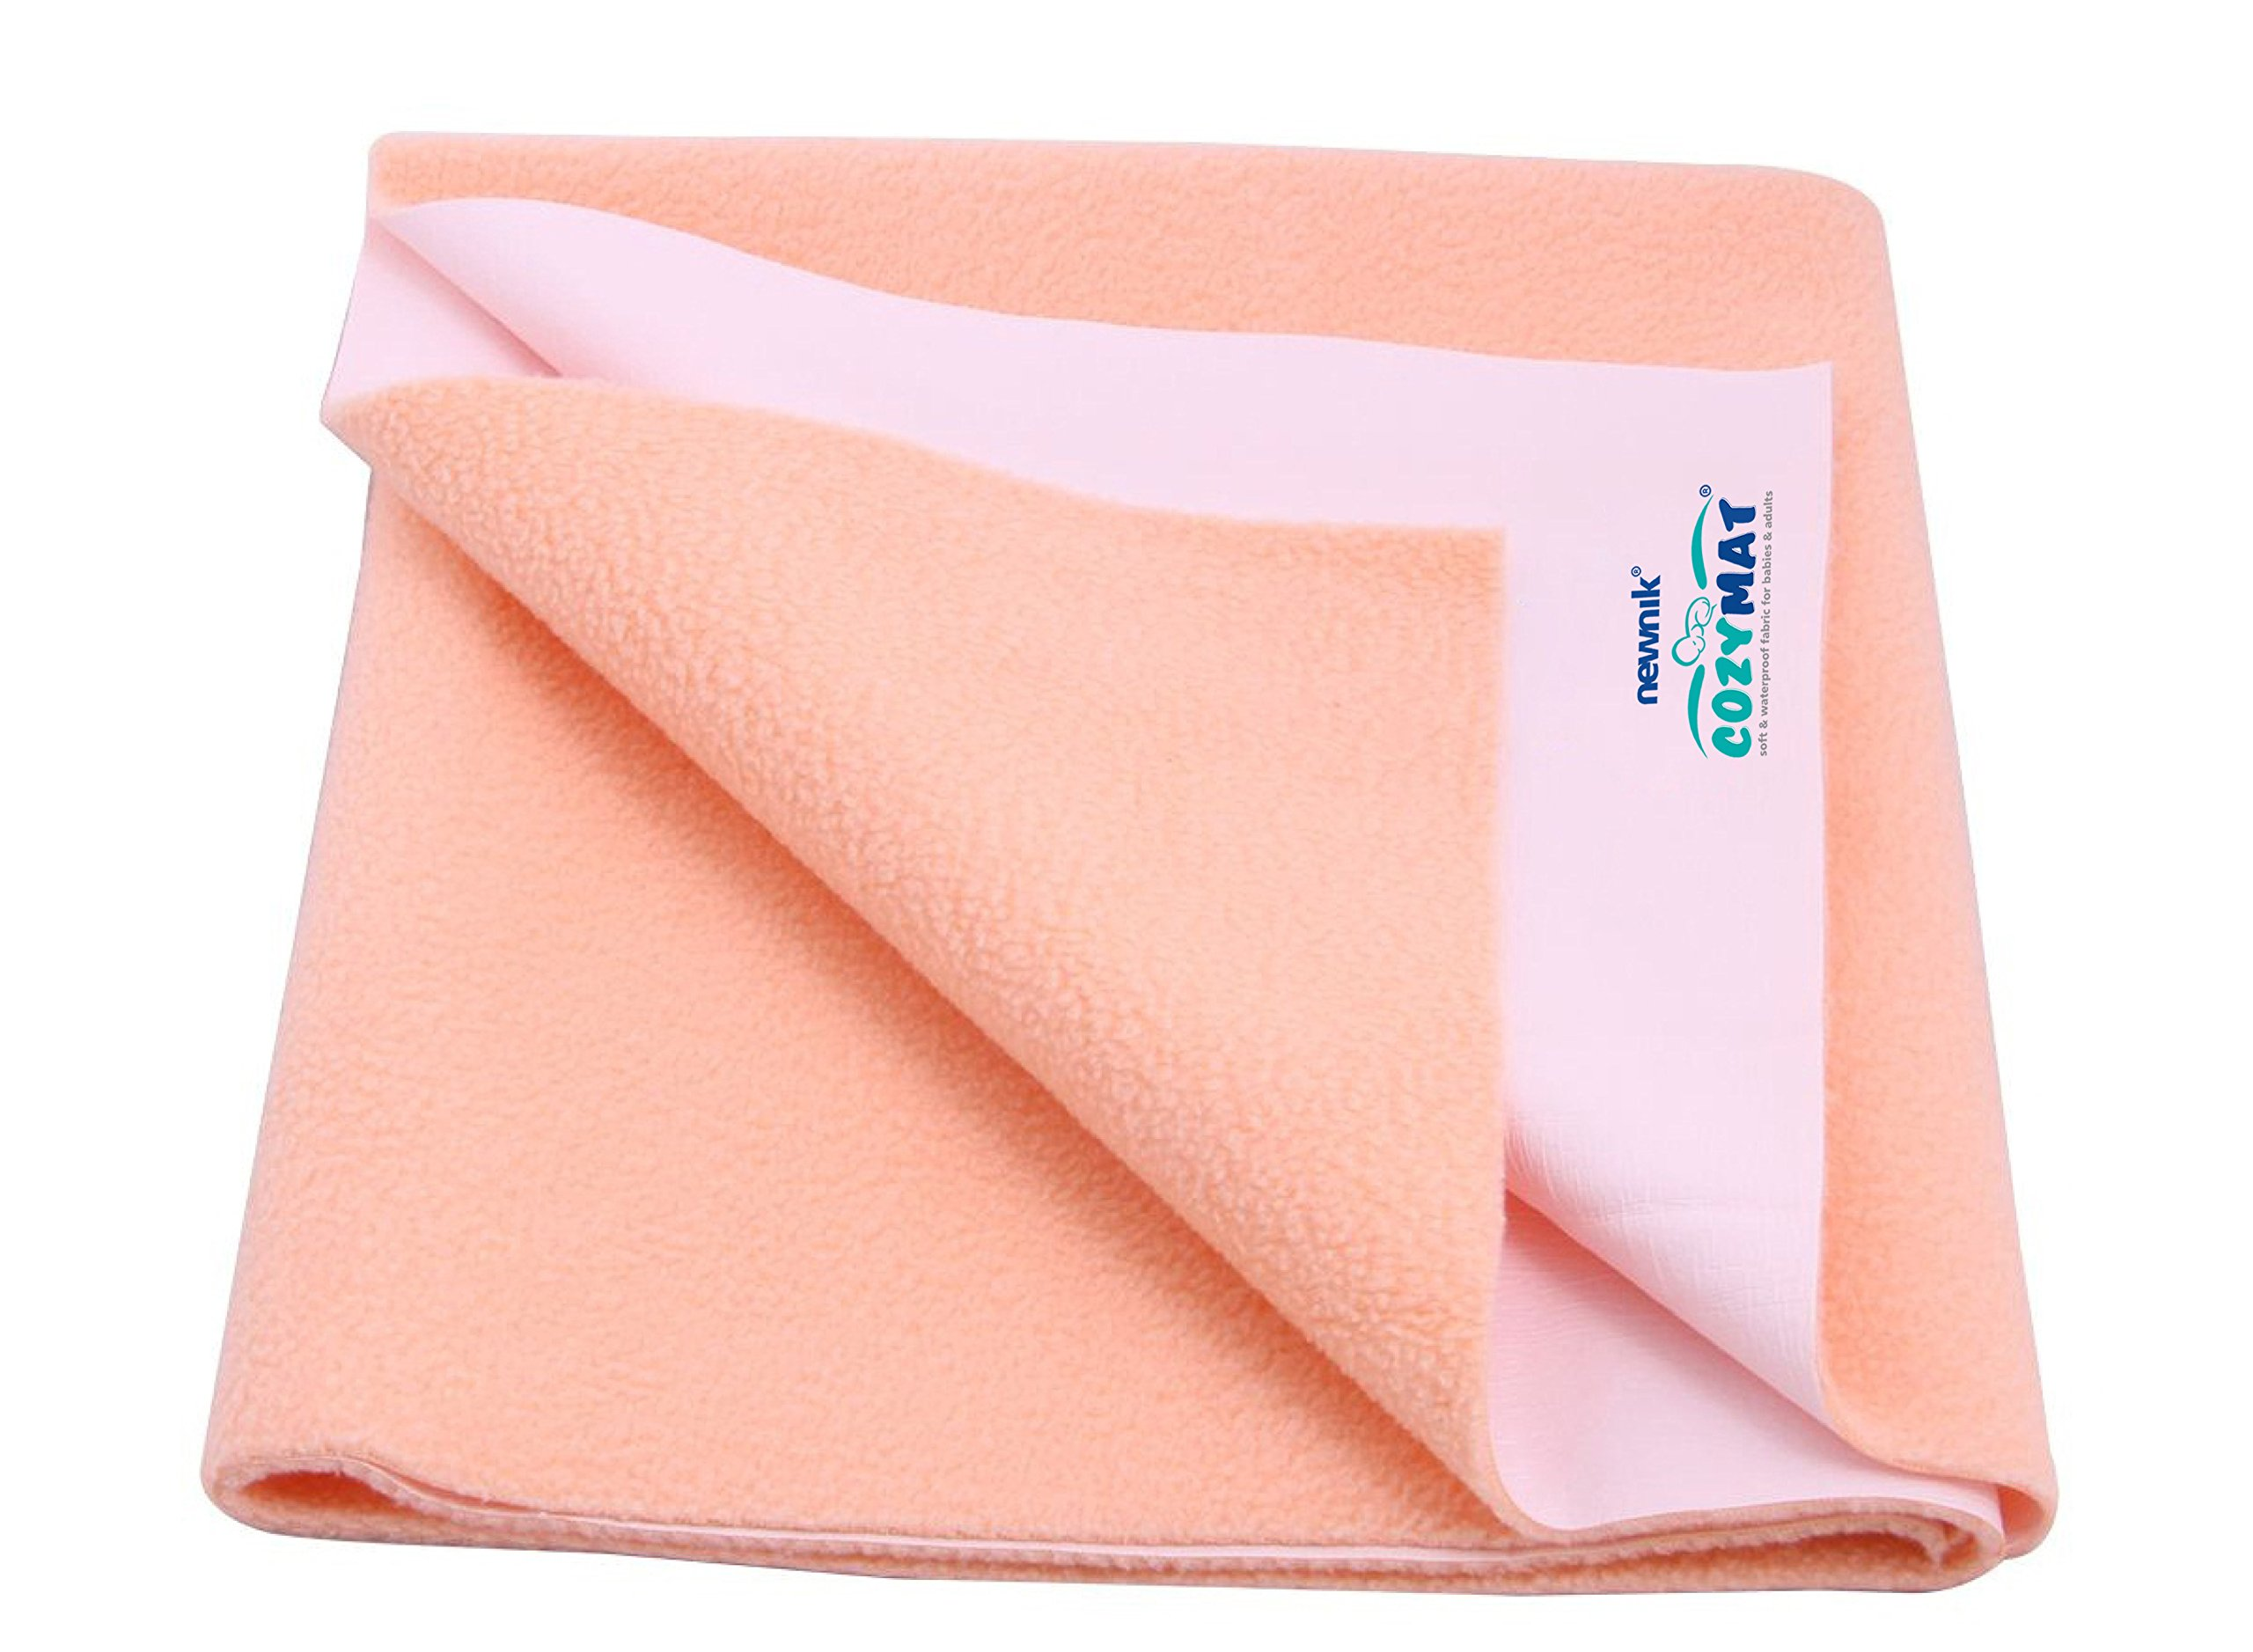 Cozymat Dry Sheet Waterproof Breathable Bed Protector (Size: 70cm X 50cm) Peach, Small by Cozymat